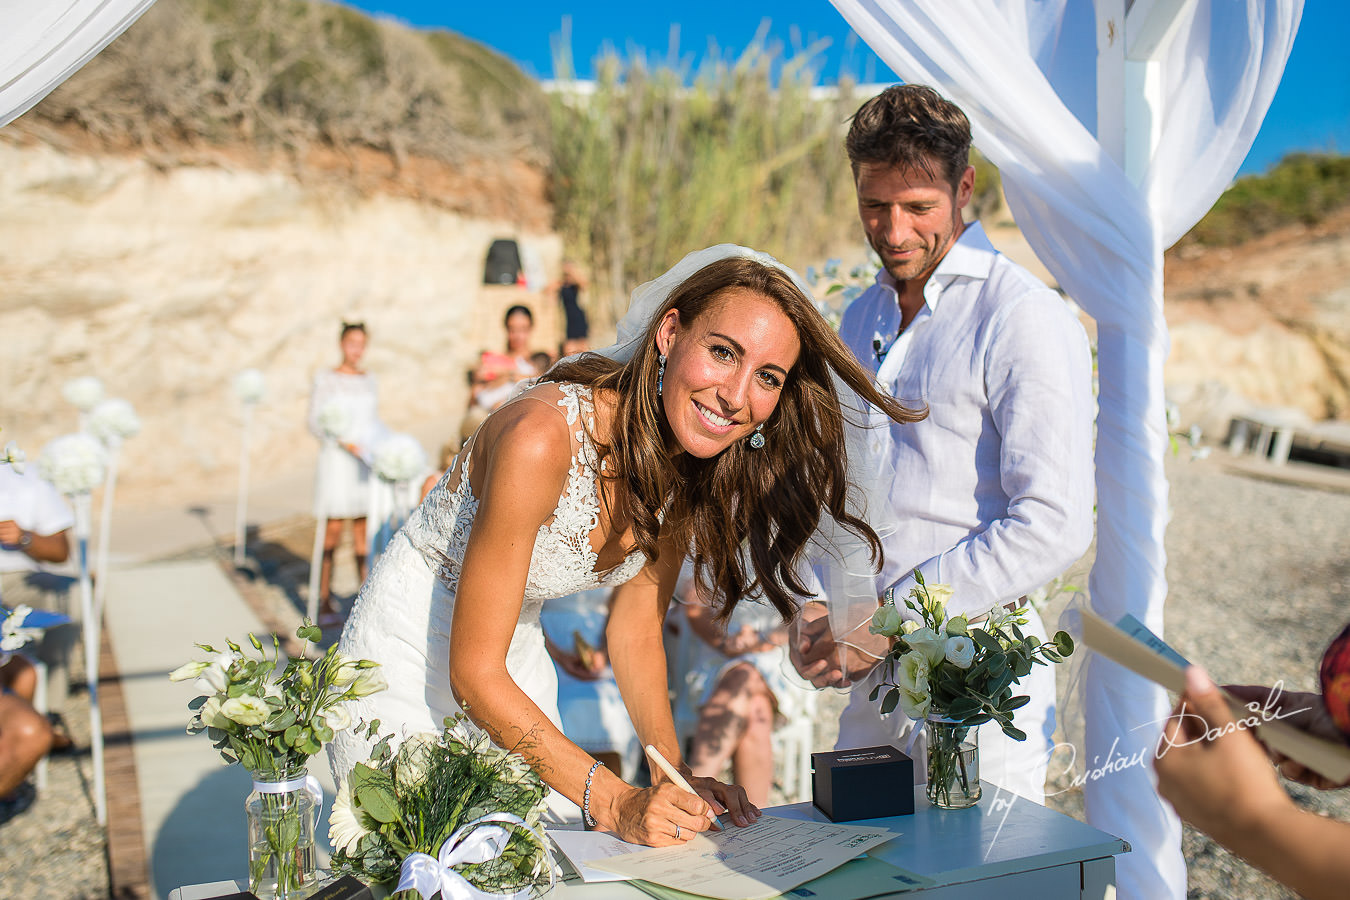 Wedding moments photographed by Cyprus Photographer Cristian Dascalu during a beautiful wedding at Cap St. George in Paphos.